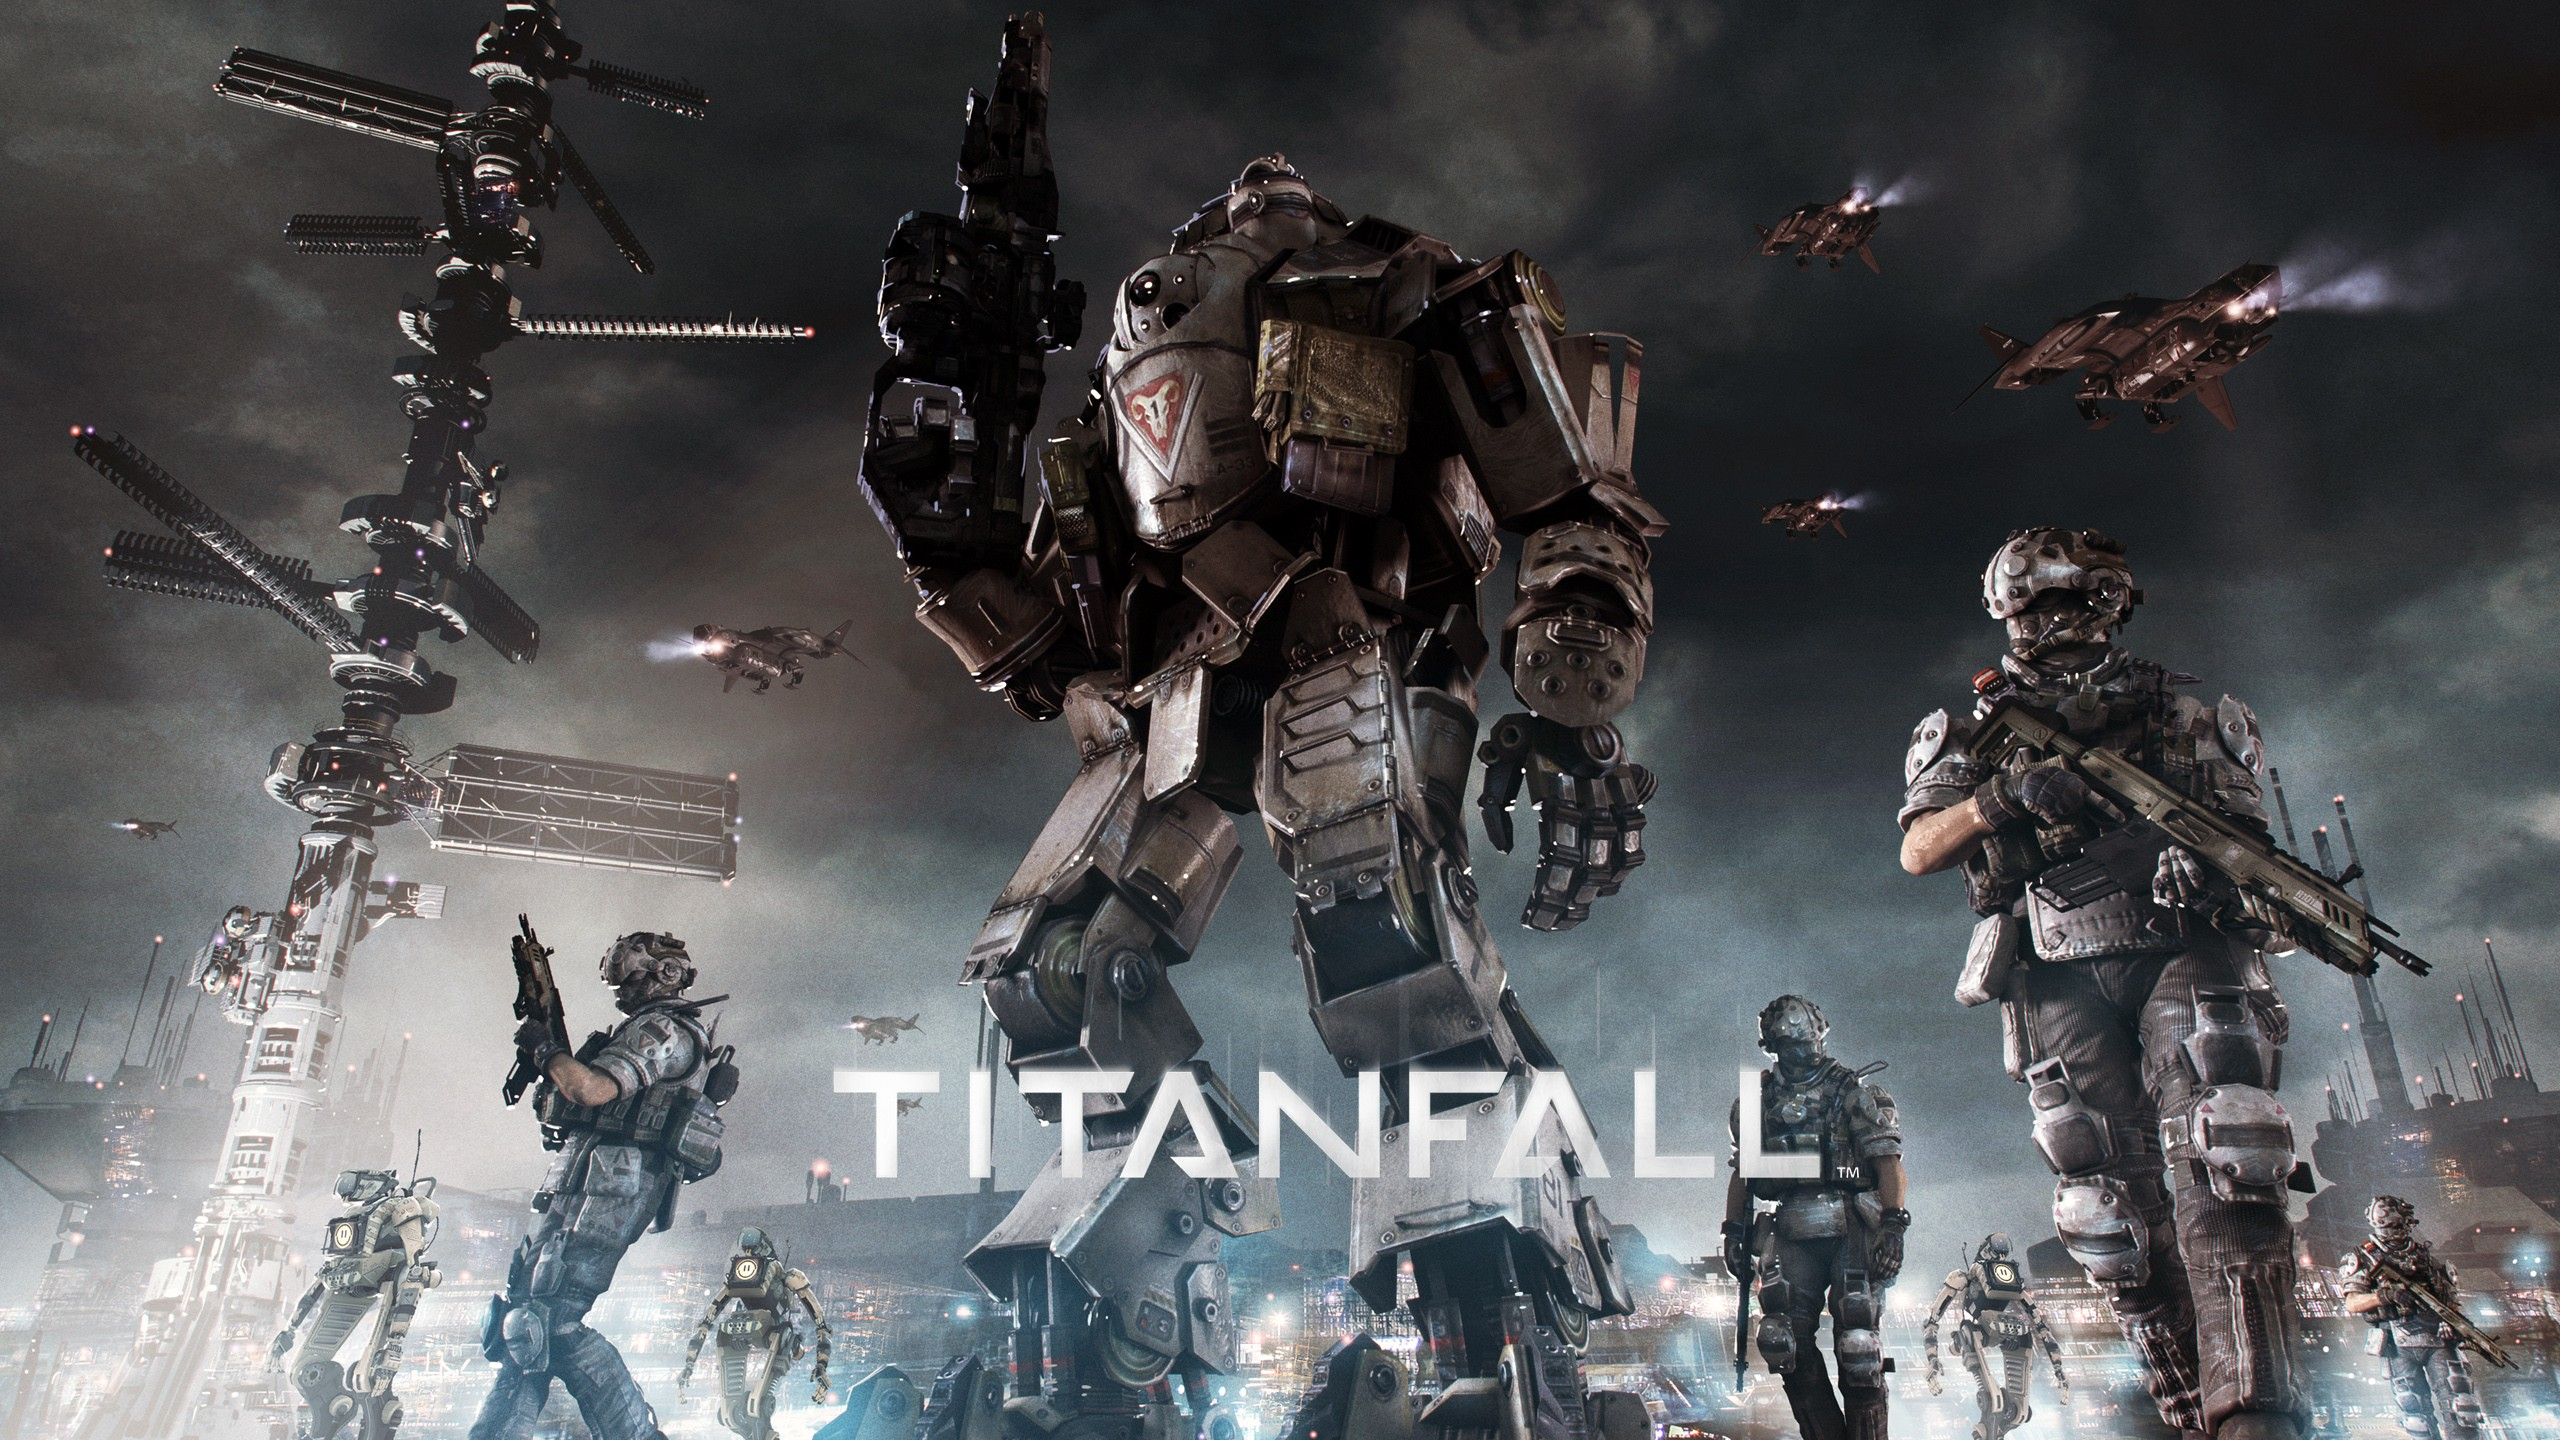 Call Of Duty 3d Wallpaper Titanfall Game Wallpapers Hd Wallpapers Id 13142